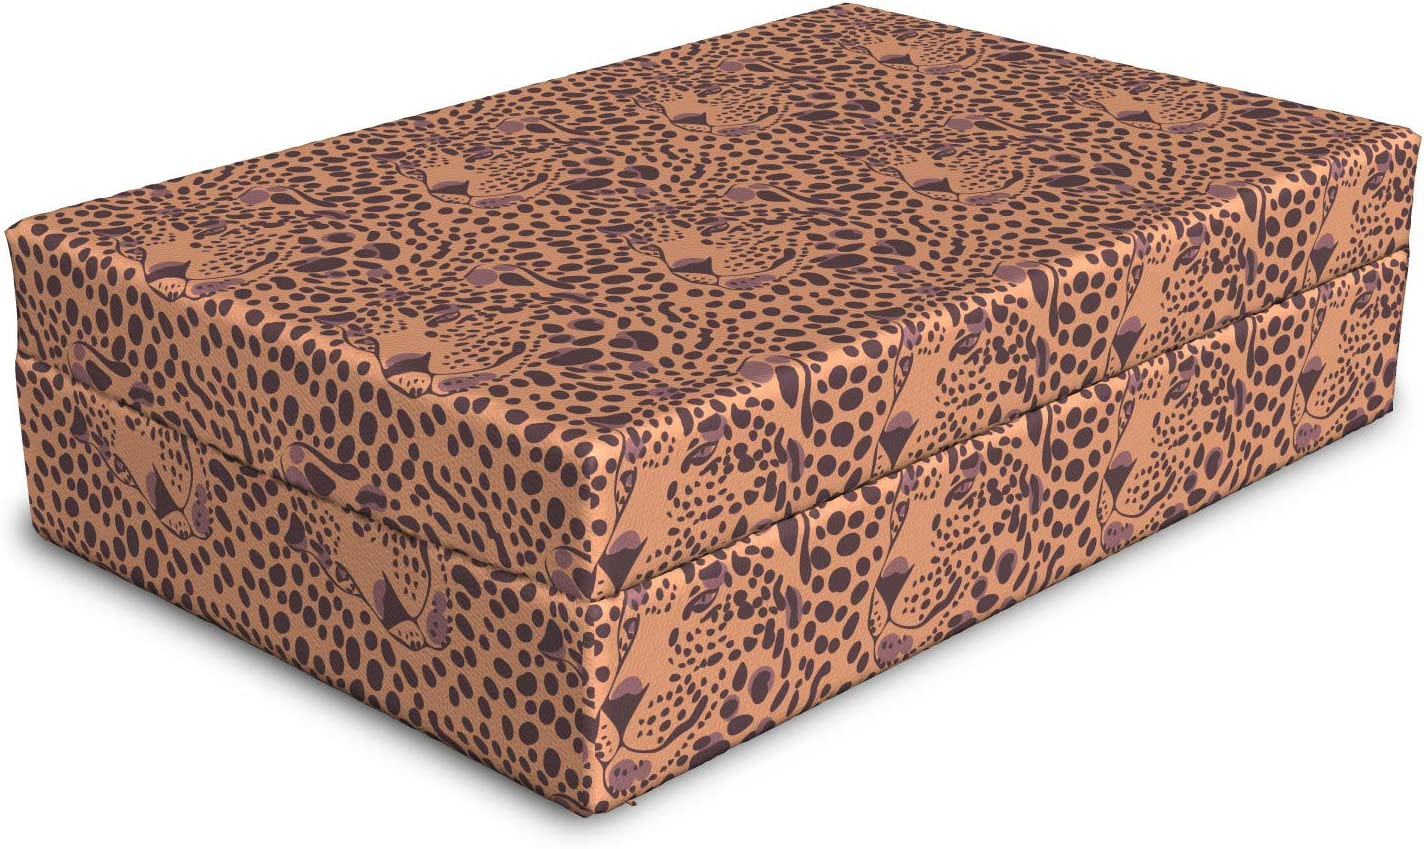 Lunarable Leopard Dog Bed Camouflage Direct stock discount with Pattern Reservation of Silhouette